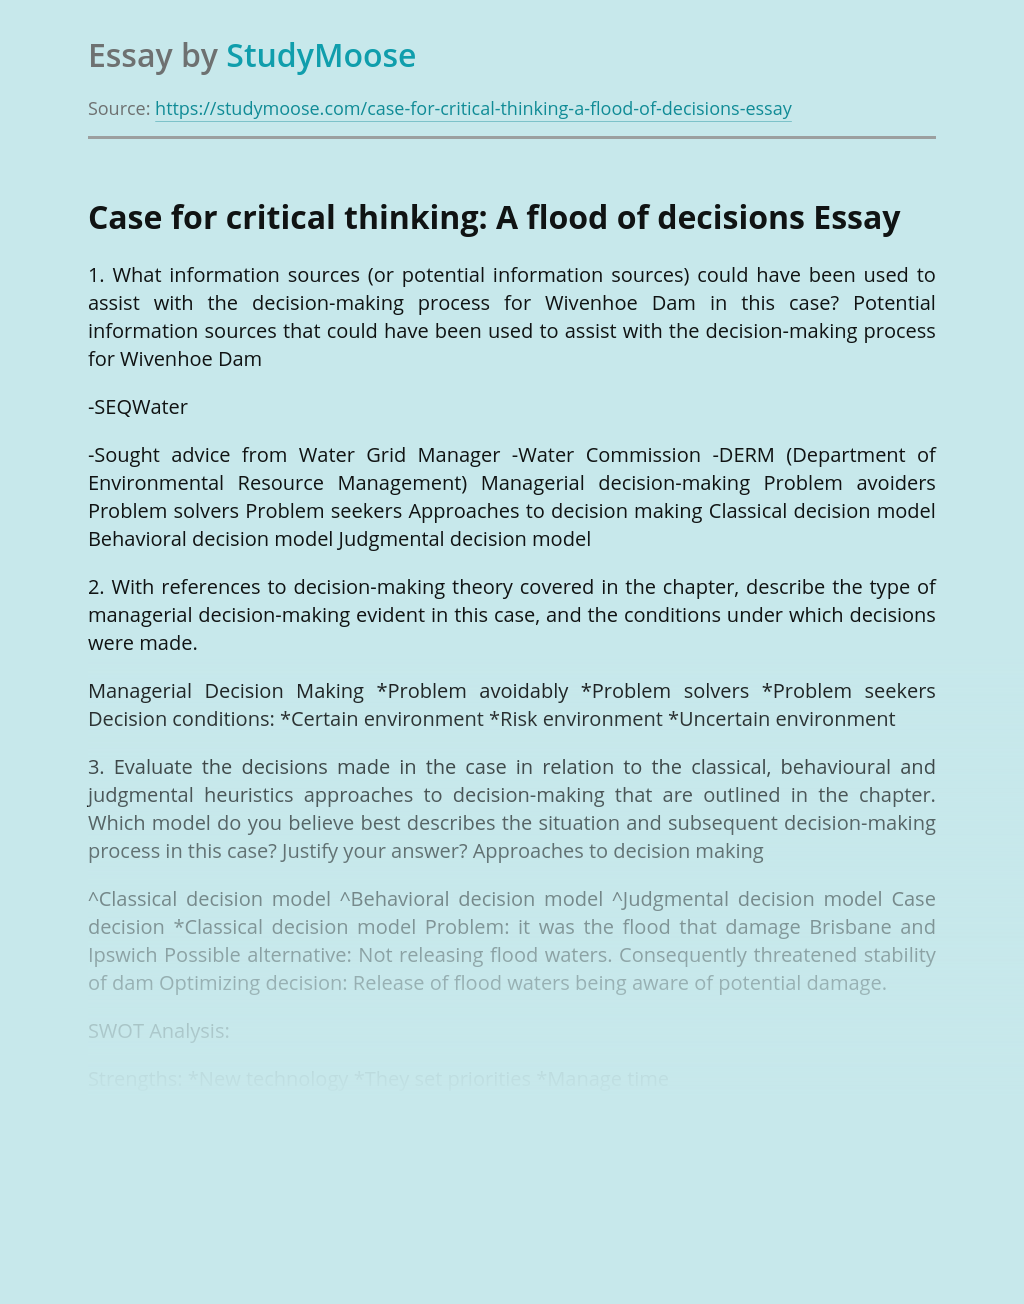 Case for critical thinking: A flood of decisions